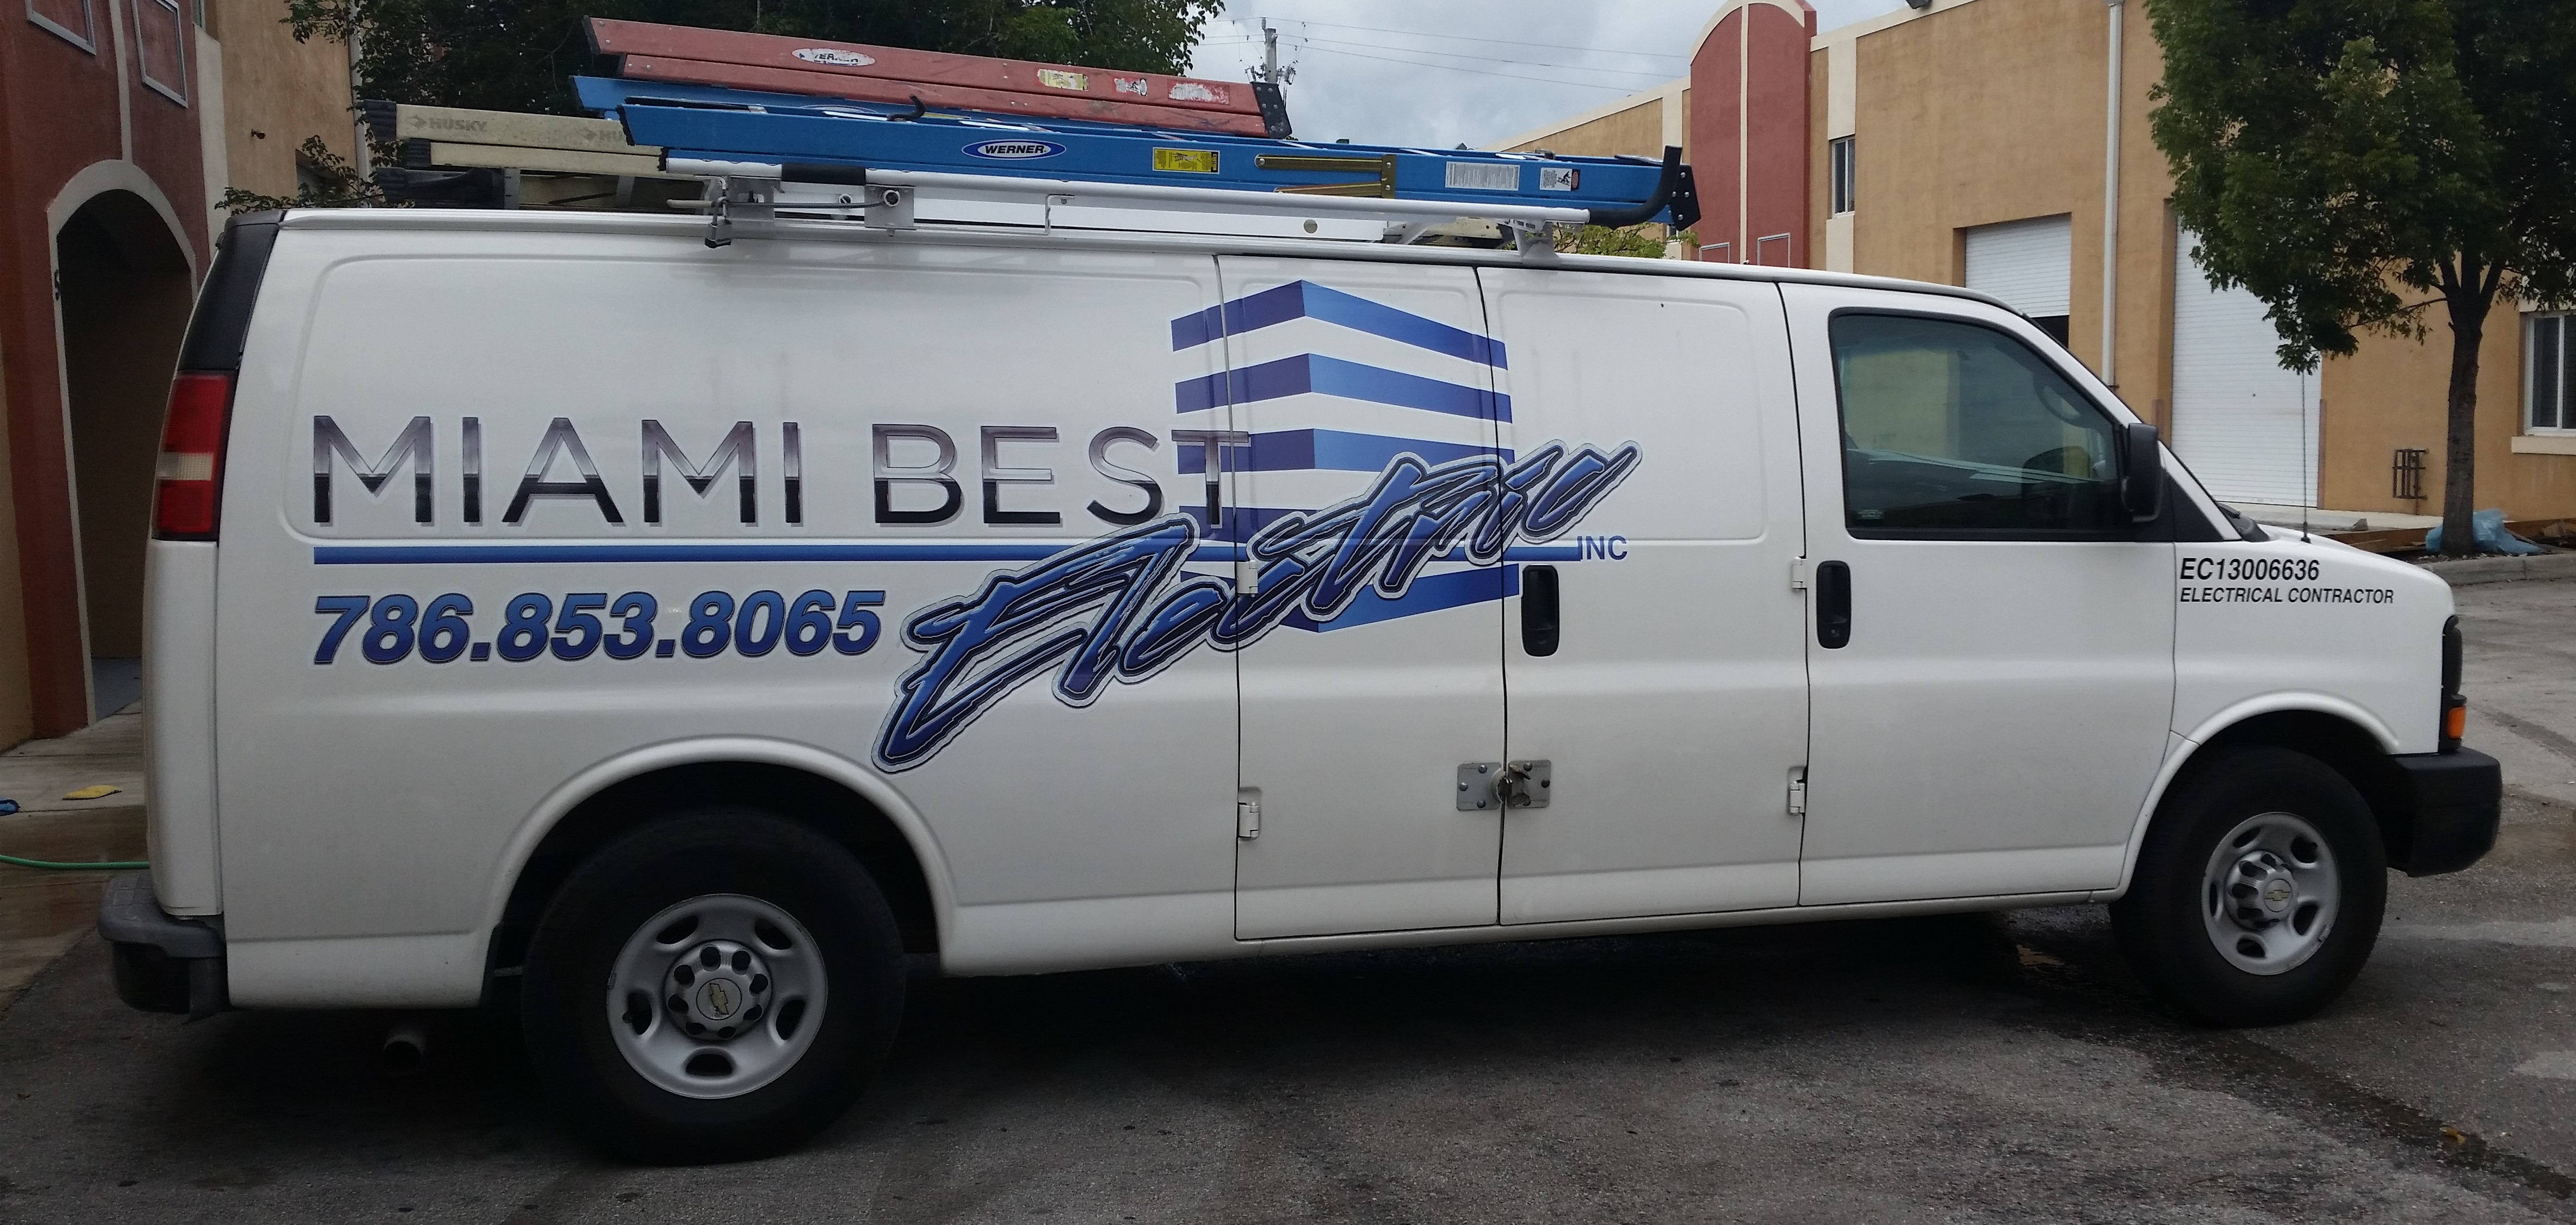 Village of Pinecrest Electrician 305 639 8575 Electrical Services Pinecrest